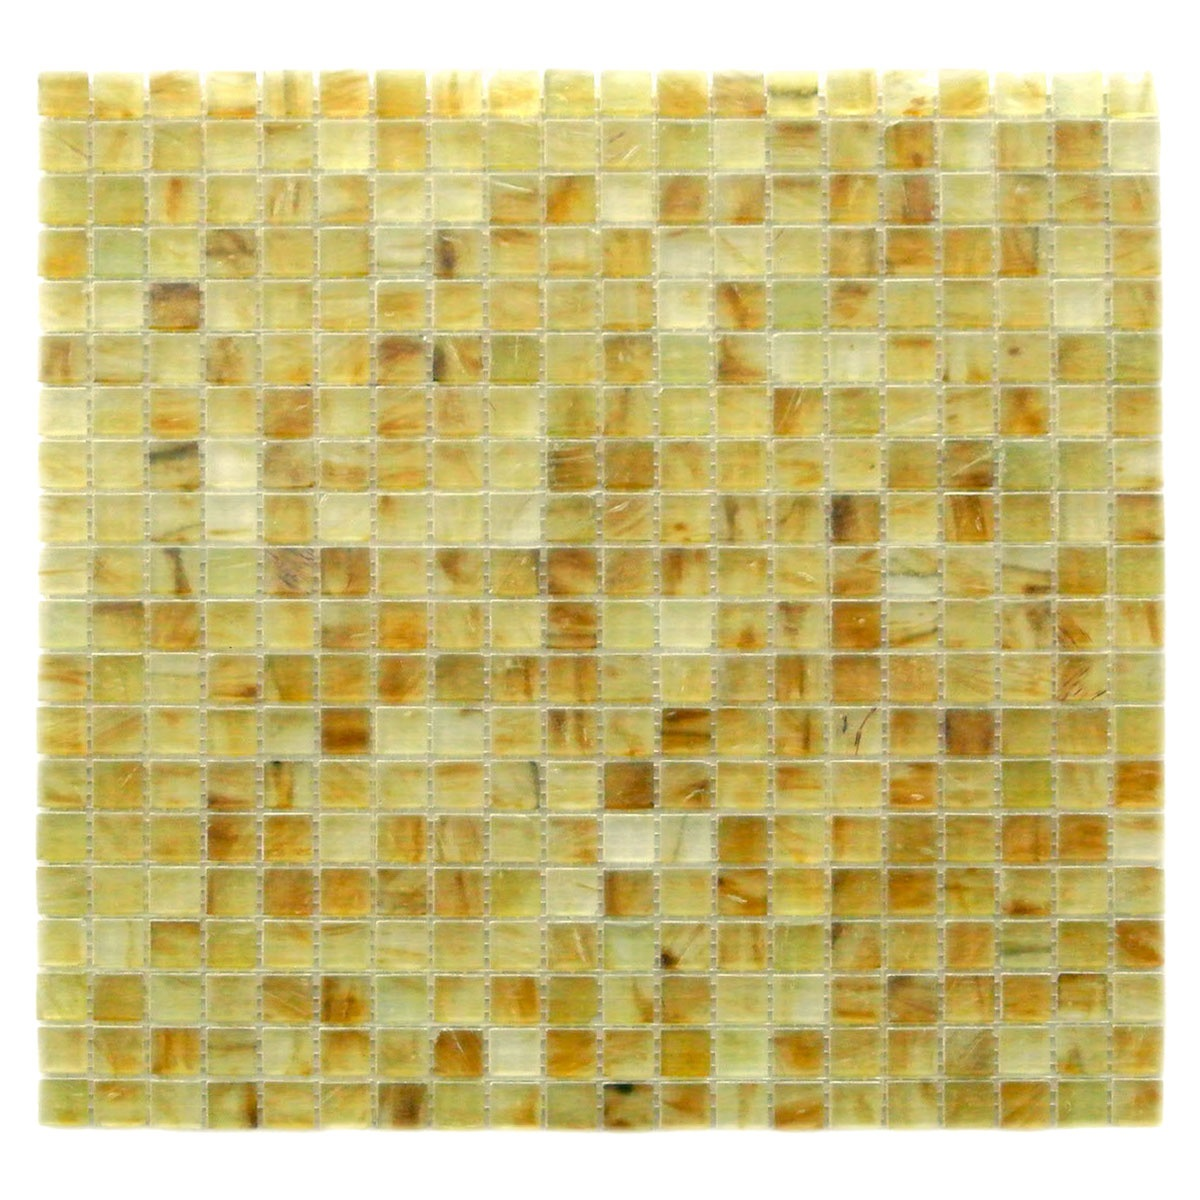 Amber 0.625 in x 0.625 in Glass Square Mosaic in MIELE  Matte